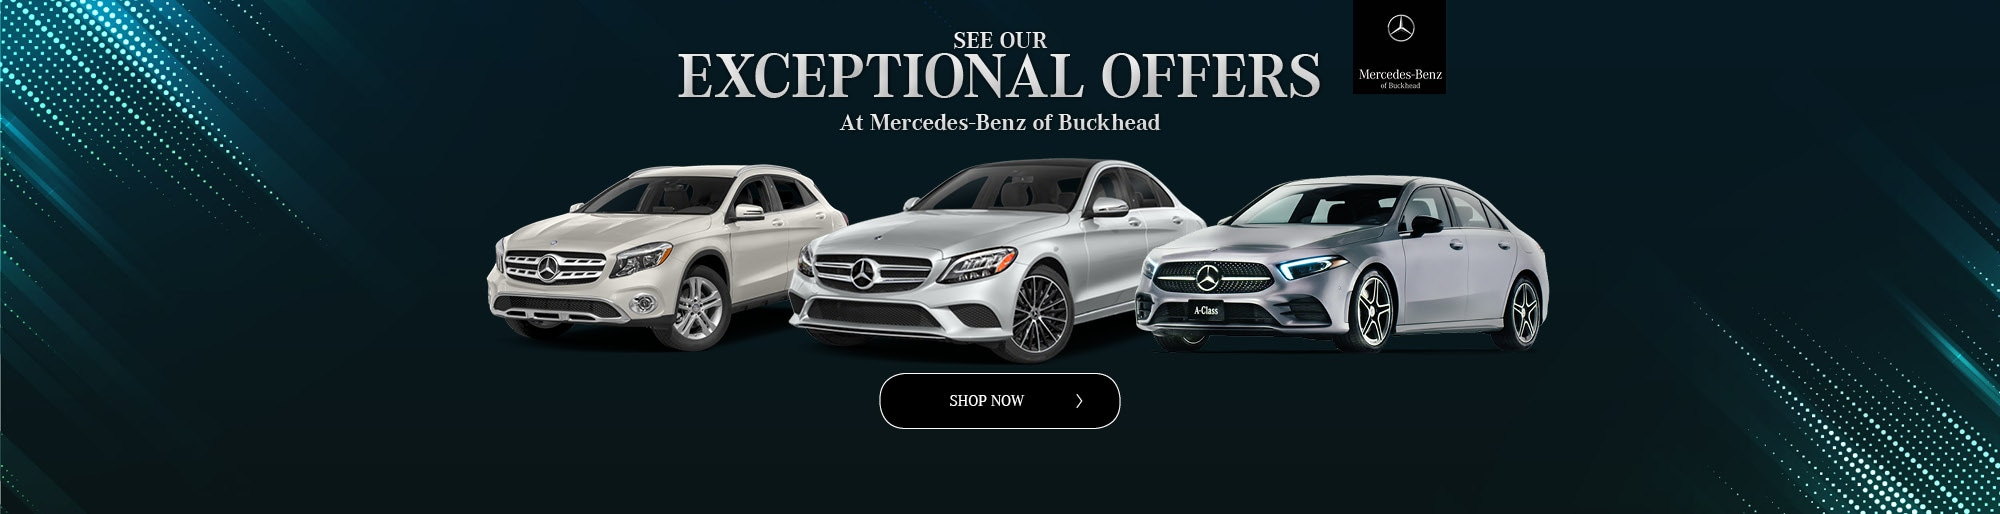 Mercedes Benz Of Buckhead >> New And Used Mercedes Benz Dealership In Atlanta Mercedes Benz Of